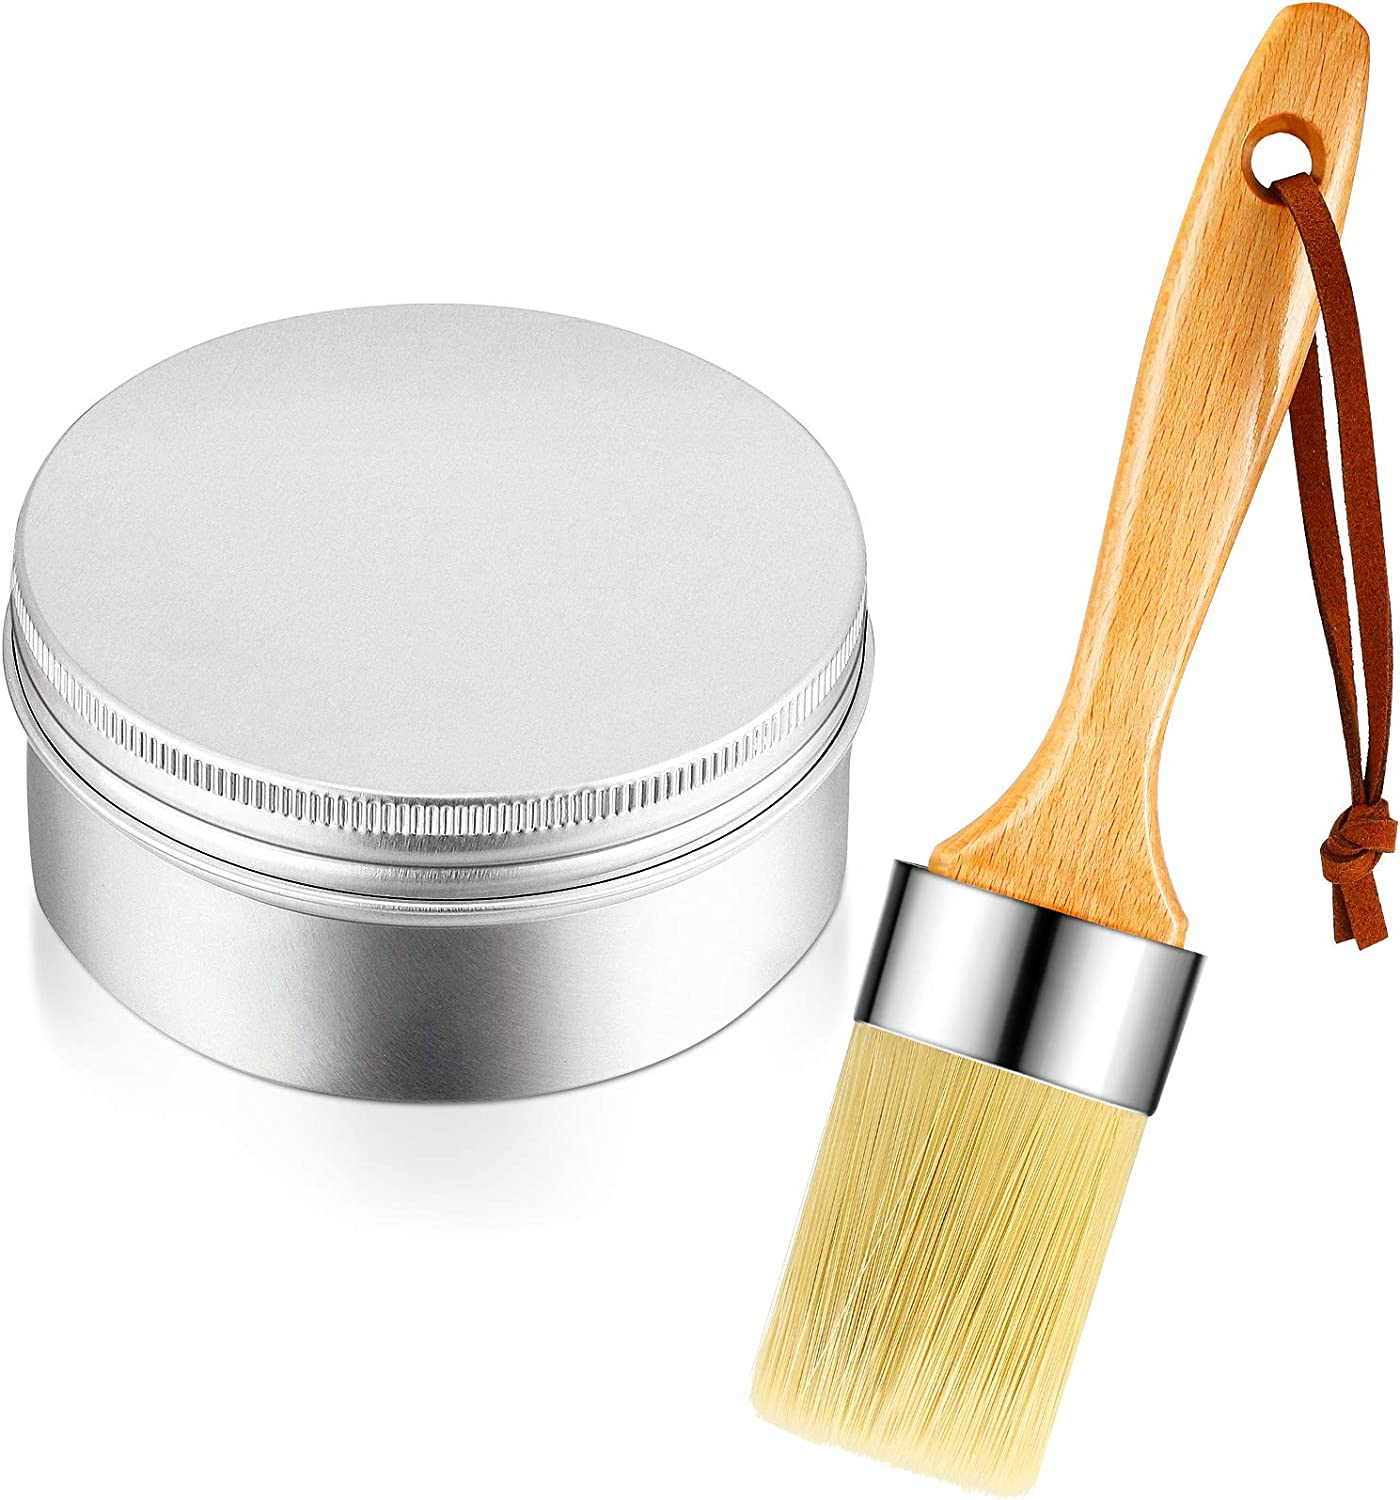 Clear Finishing Wax Furniture Finishing Wax 7 oz Chalk Paint Sealing Wax with Chalk and Wax Paint Brush for Painting or Waxing Interior Furniture, Cabinets, Walls, Home Decor Accessories